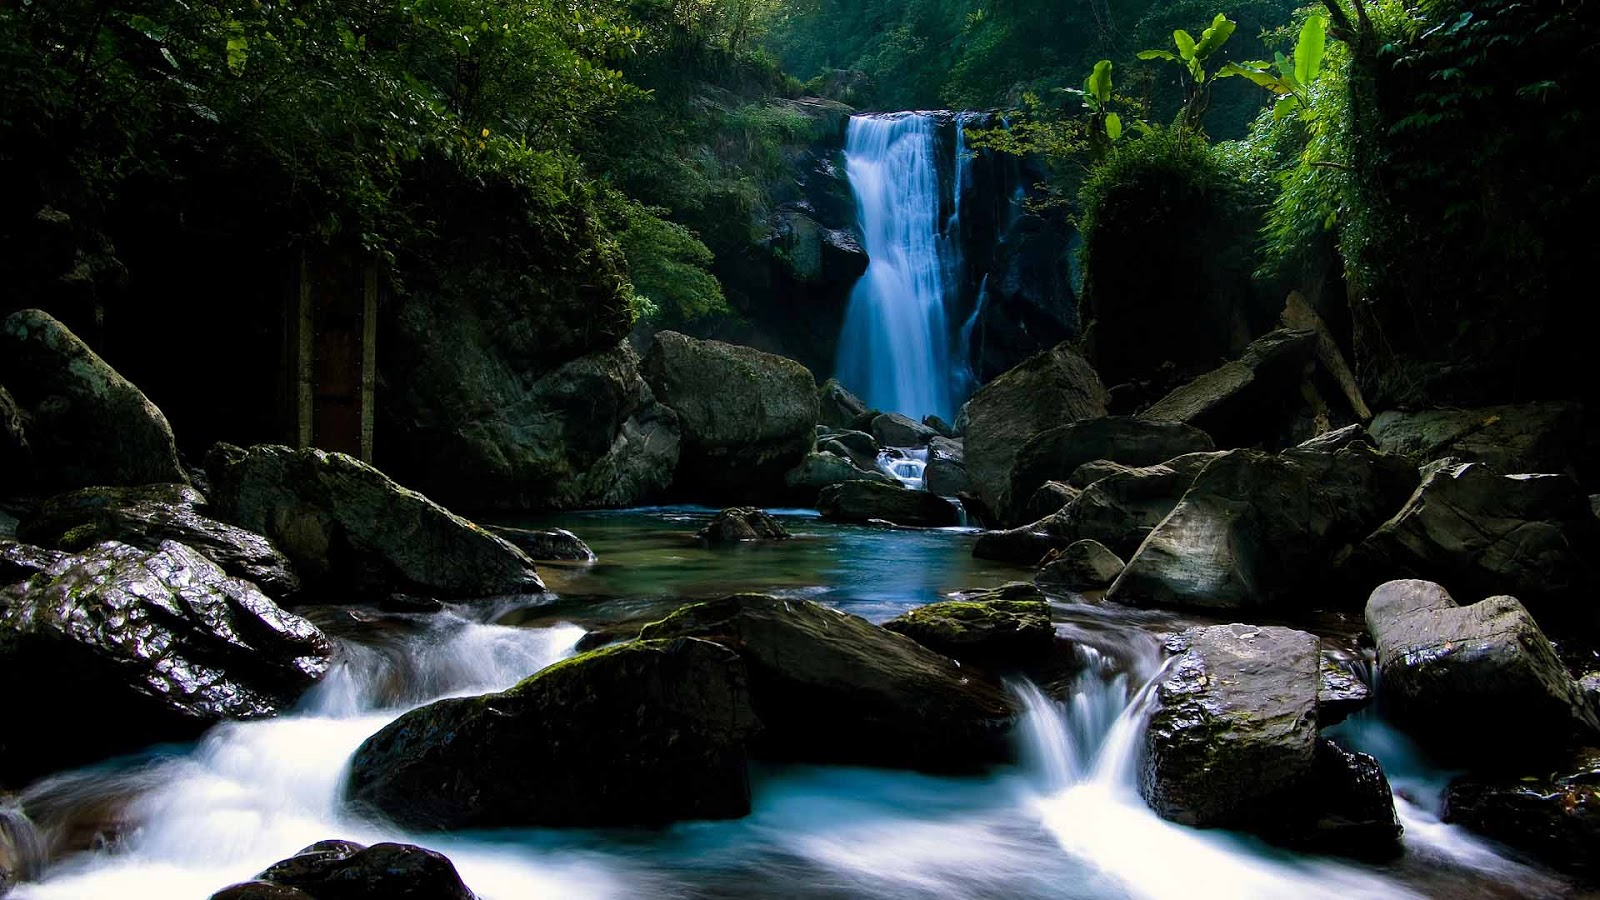 HD Wallpapers 1080P Cool Free download - HD Wallpapers ...